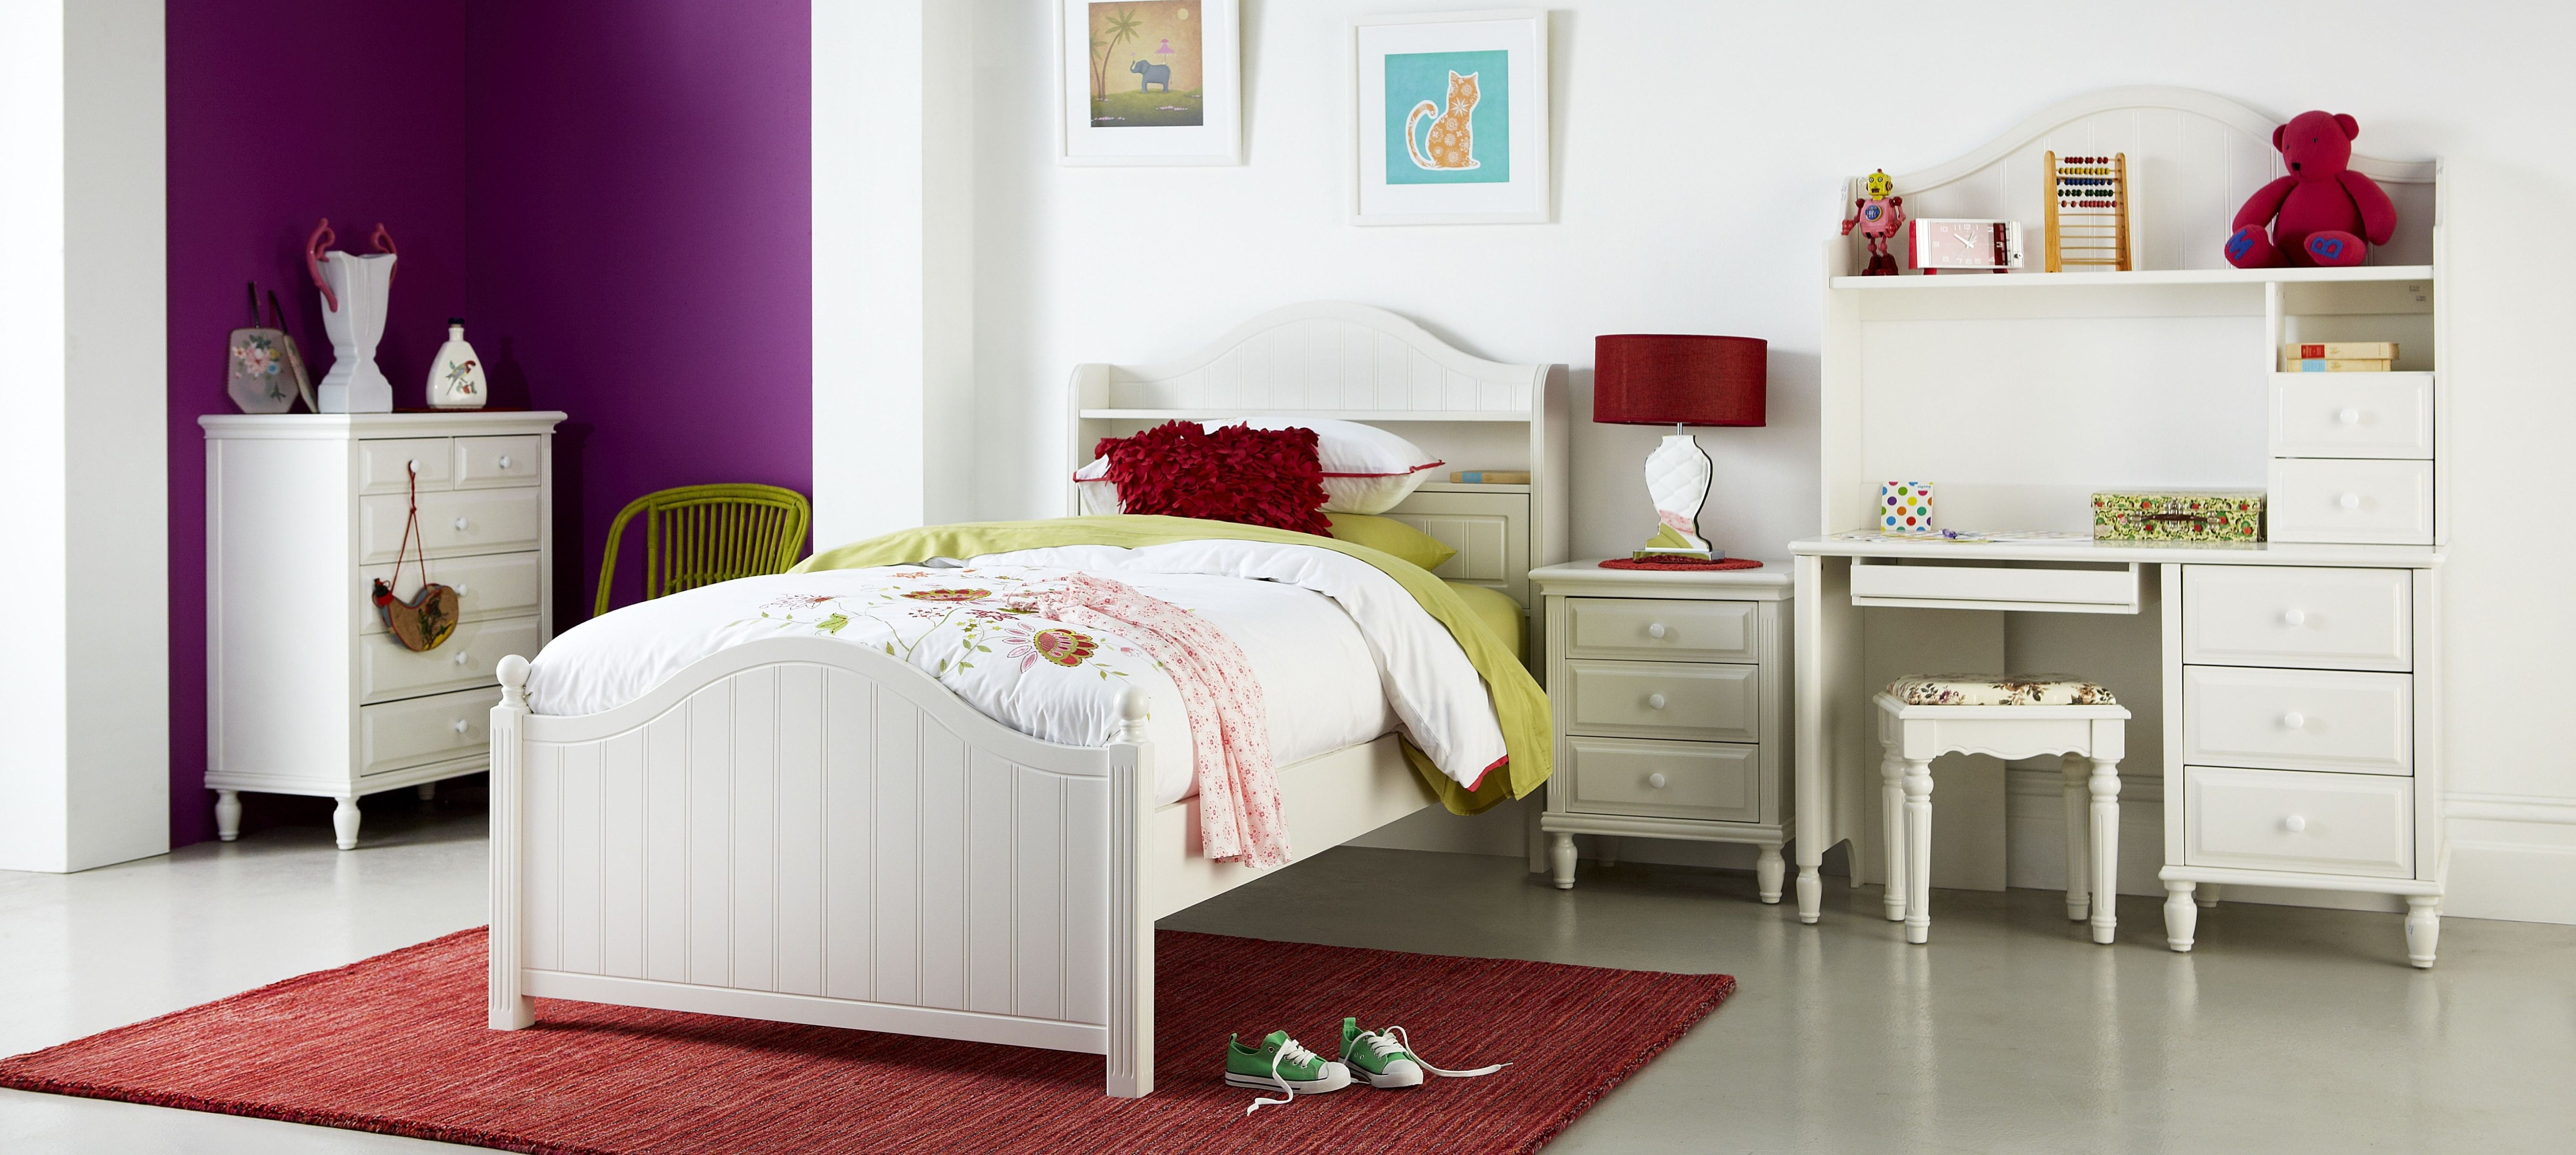 August Bedroom Furniture August Kids Furniture Beautiful French